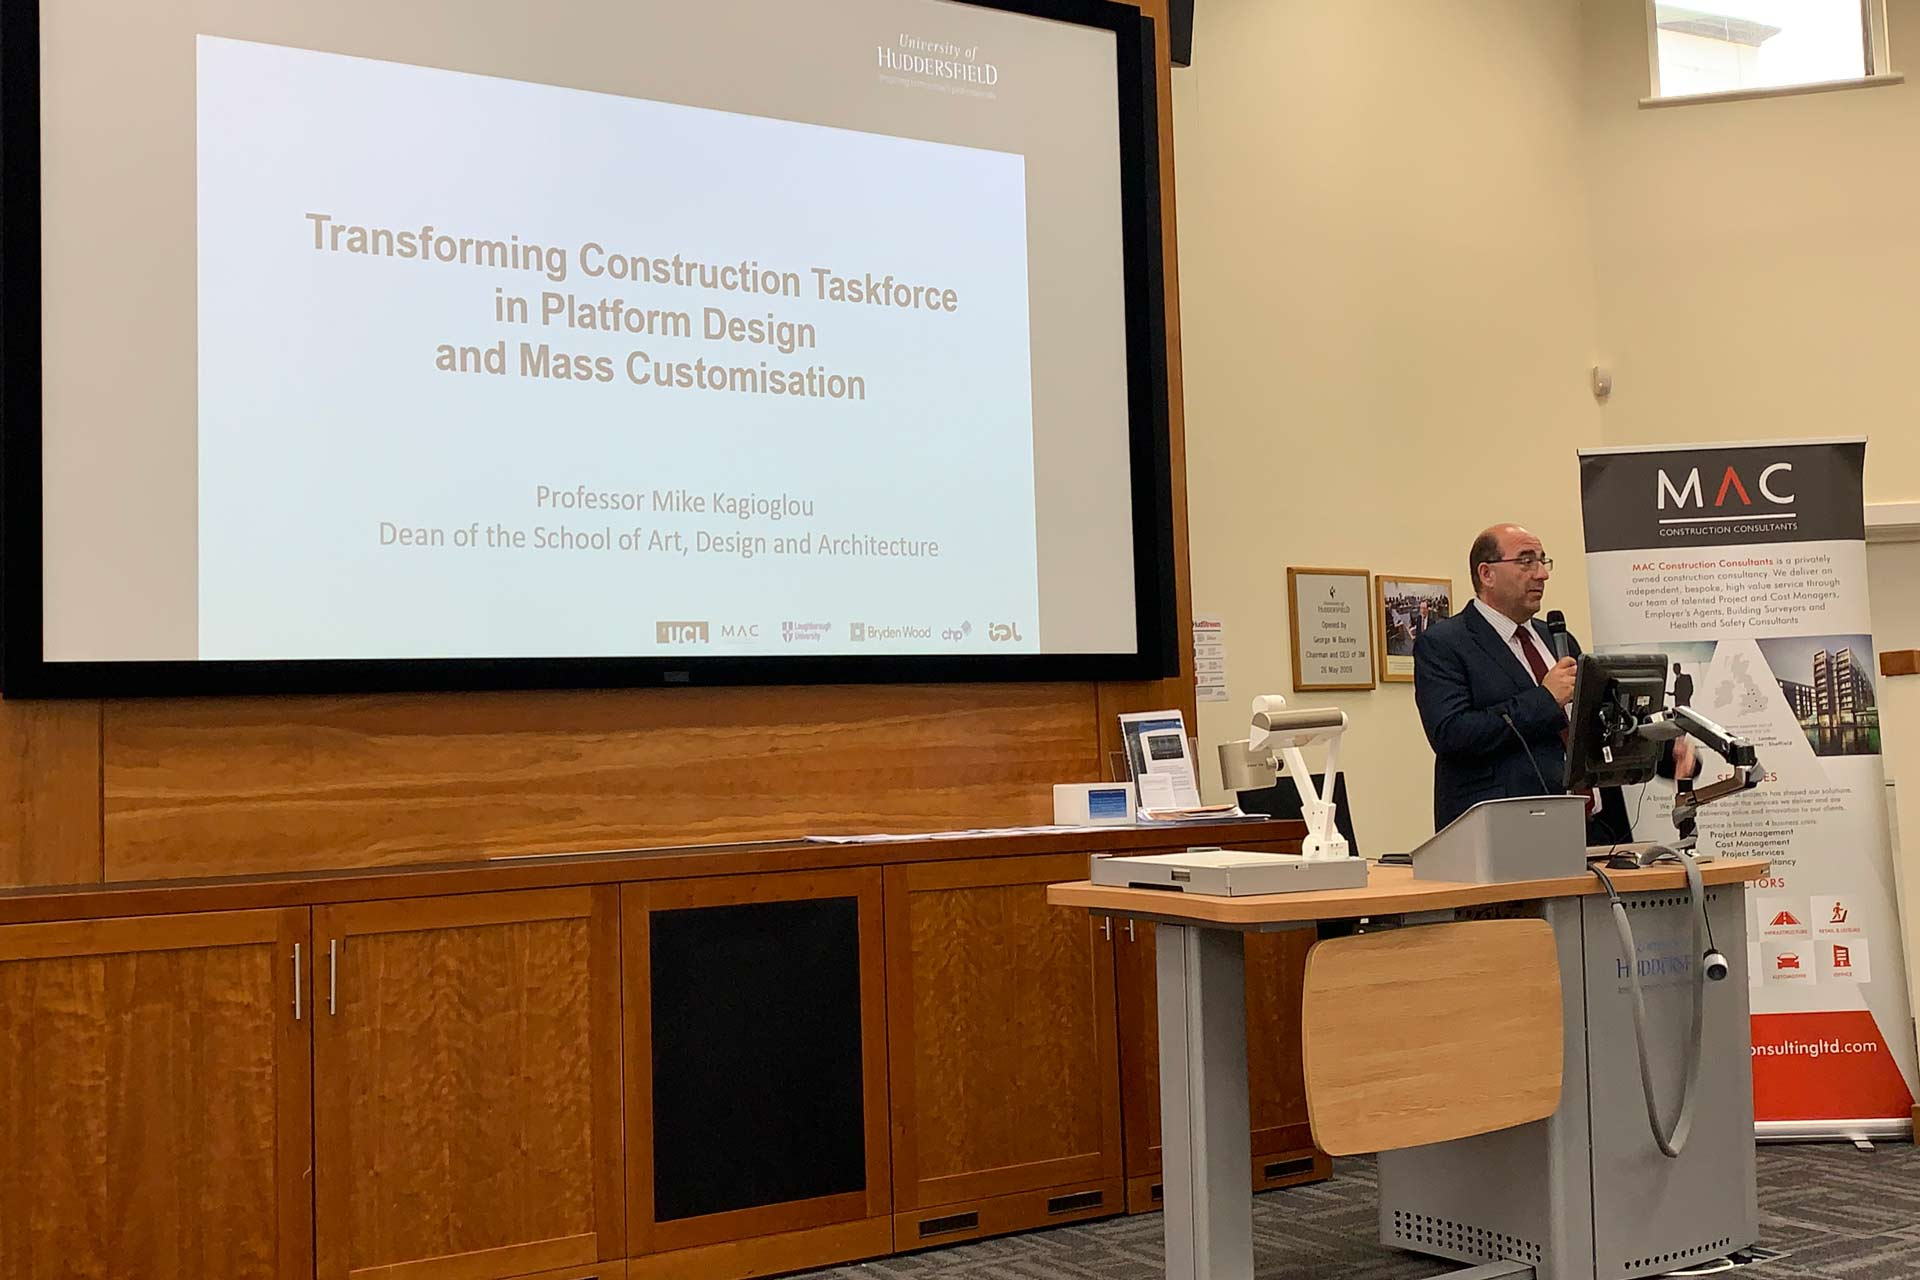 Prof Mike Kagioglou presenting at the first Transforming Construction Taskforce workshop